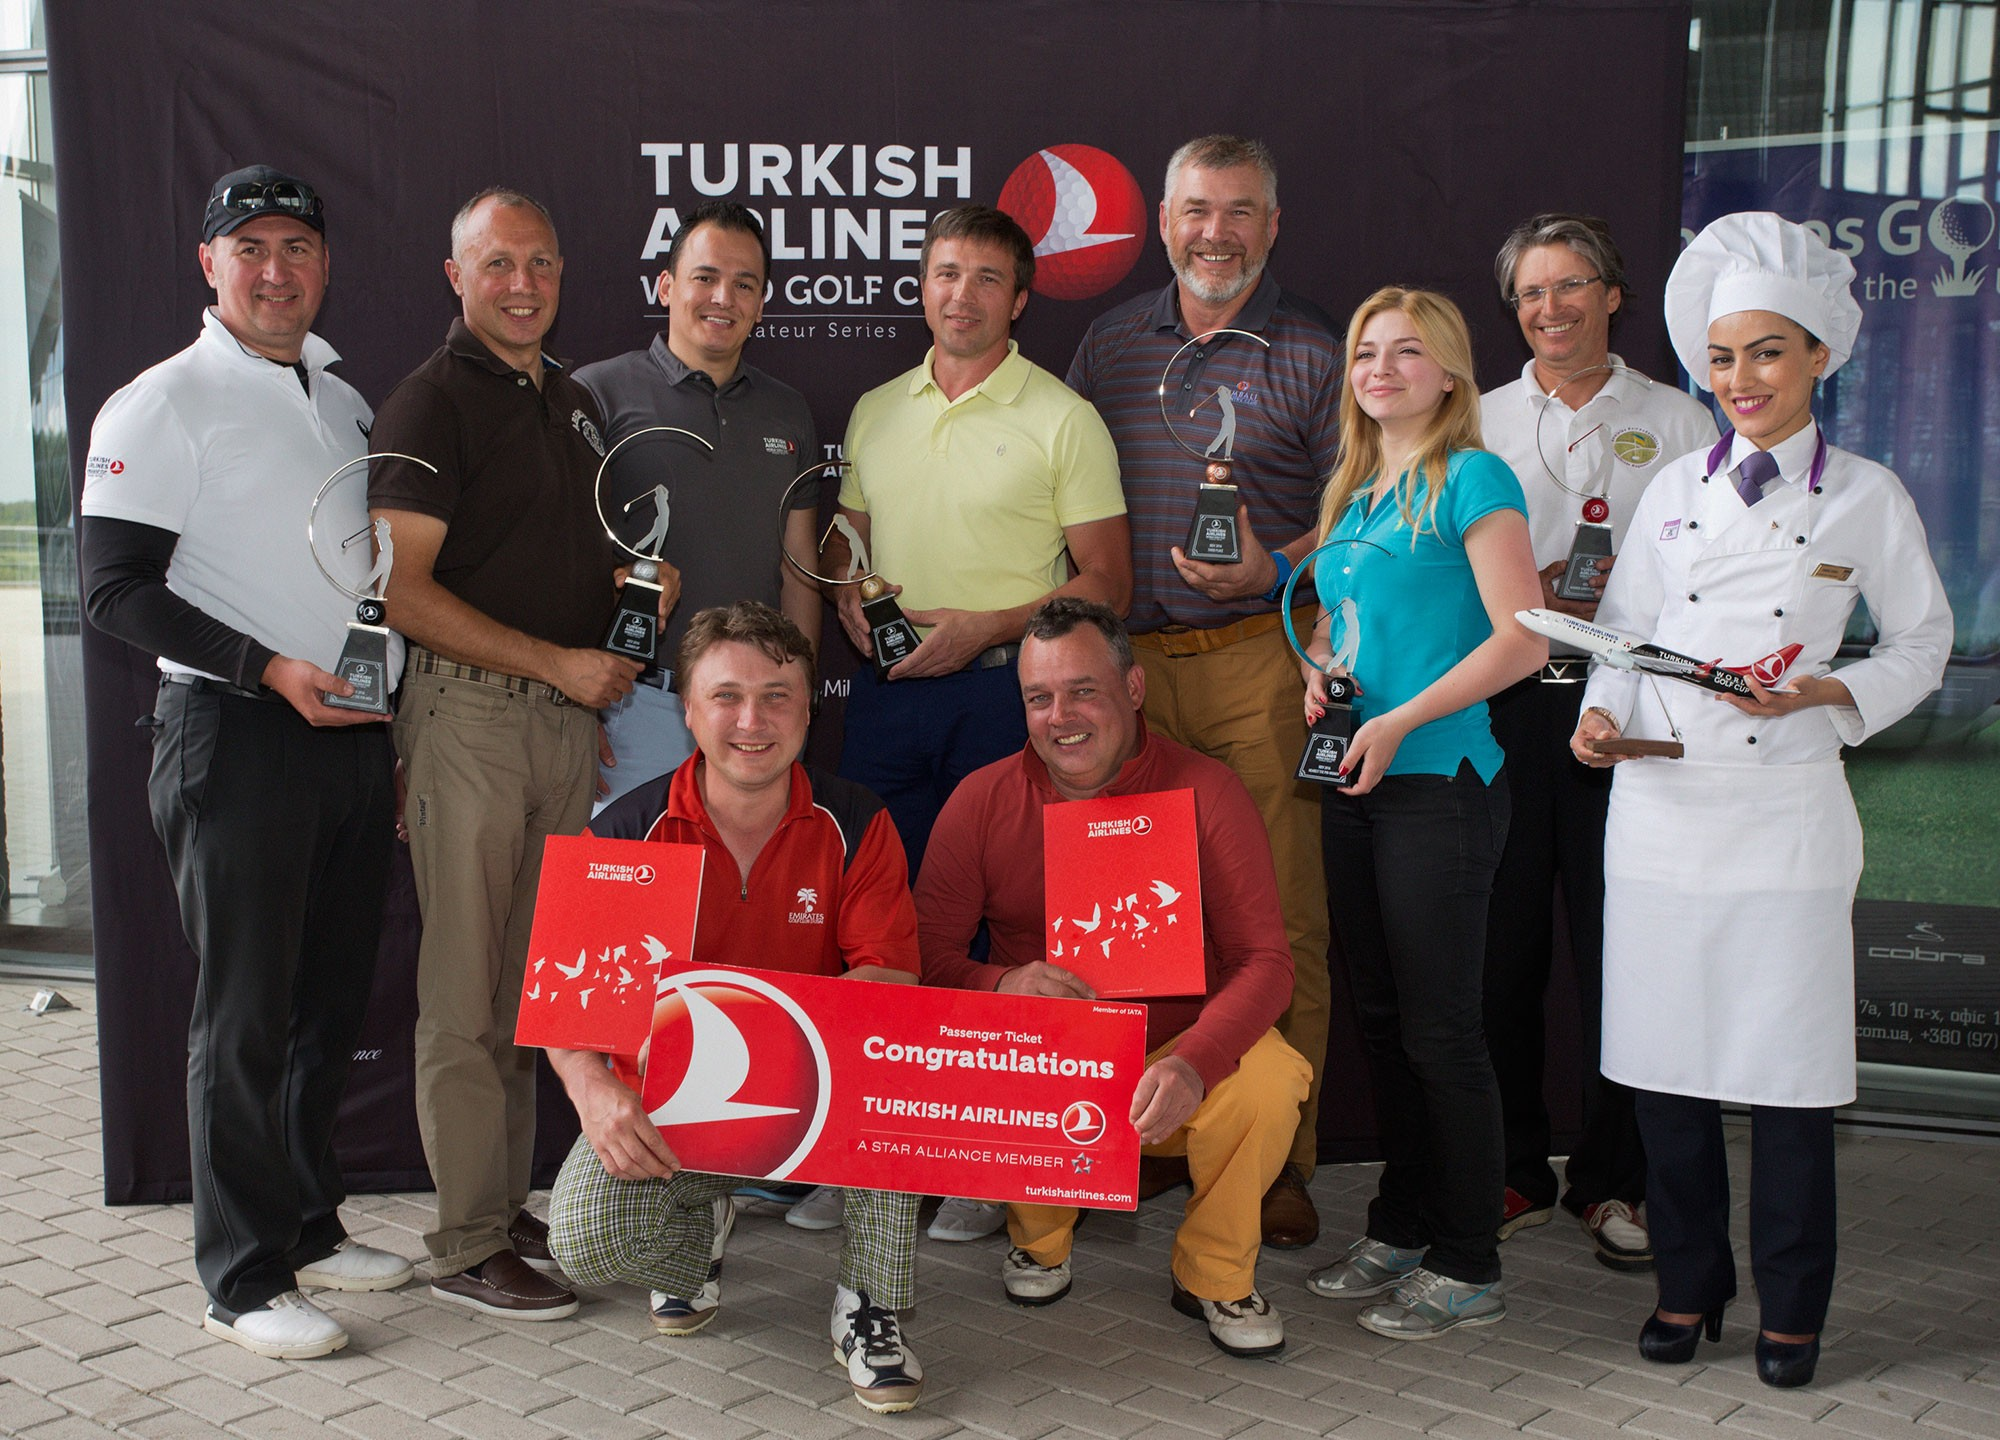 turkish-airlines-golf-cup-kiev